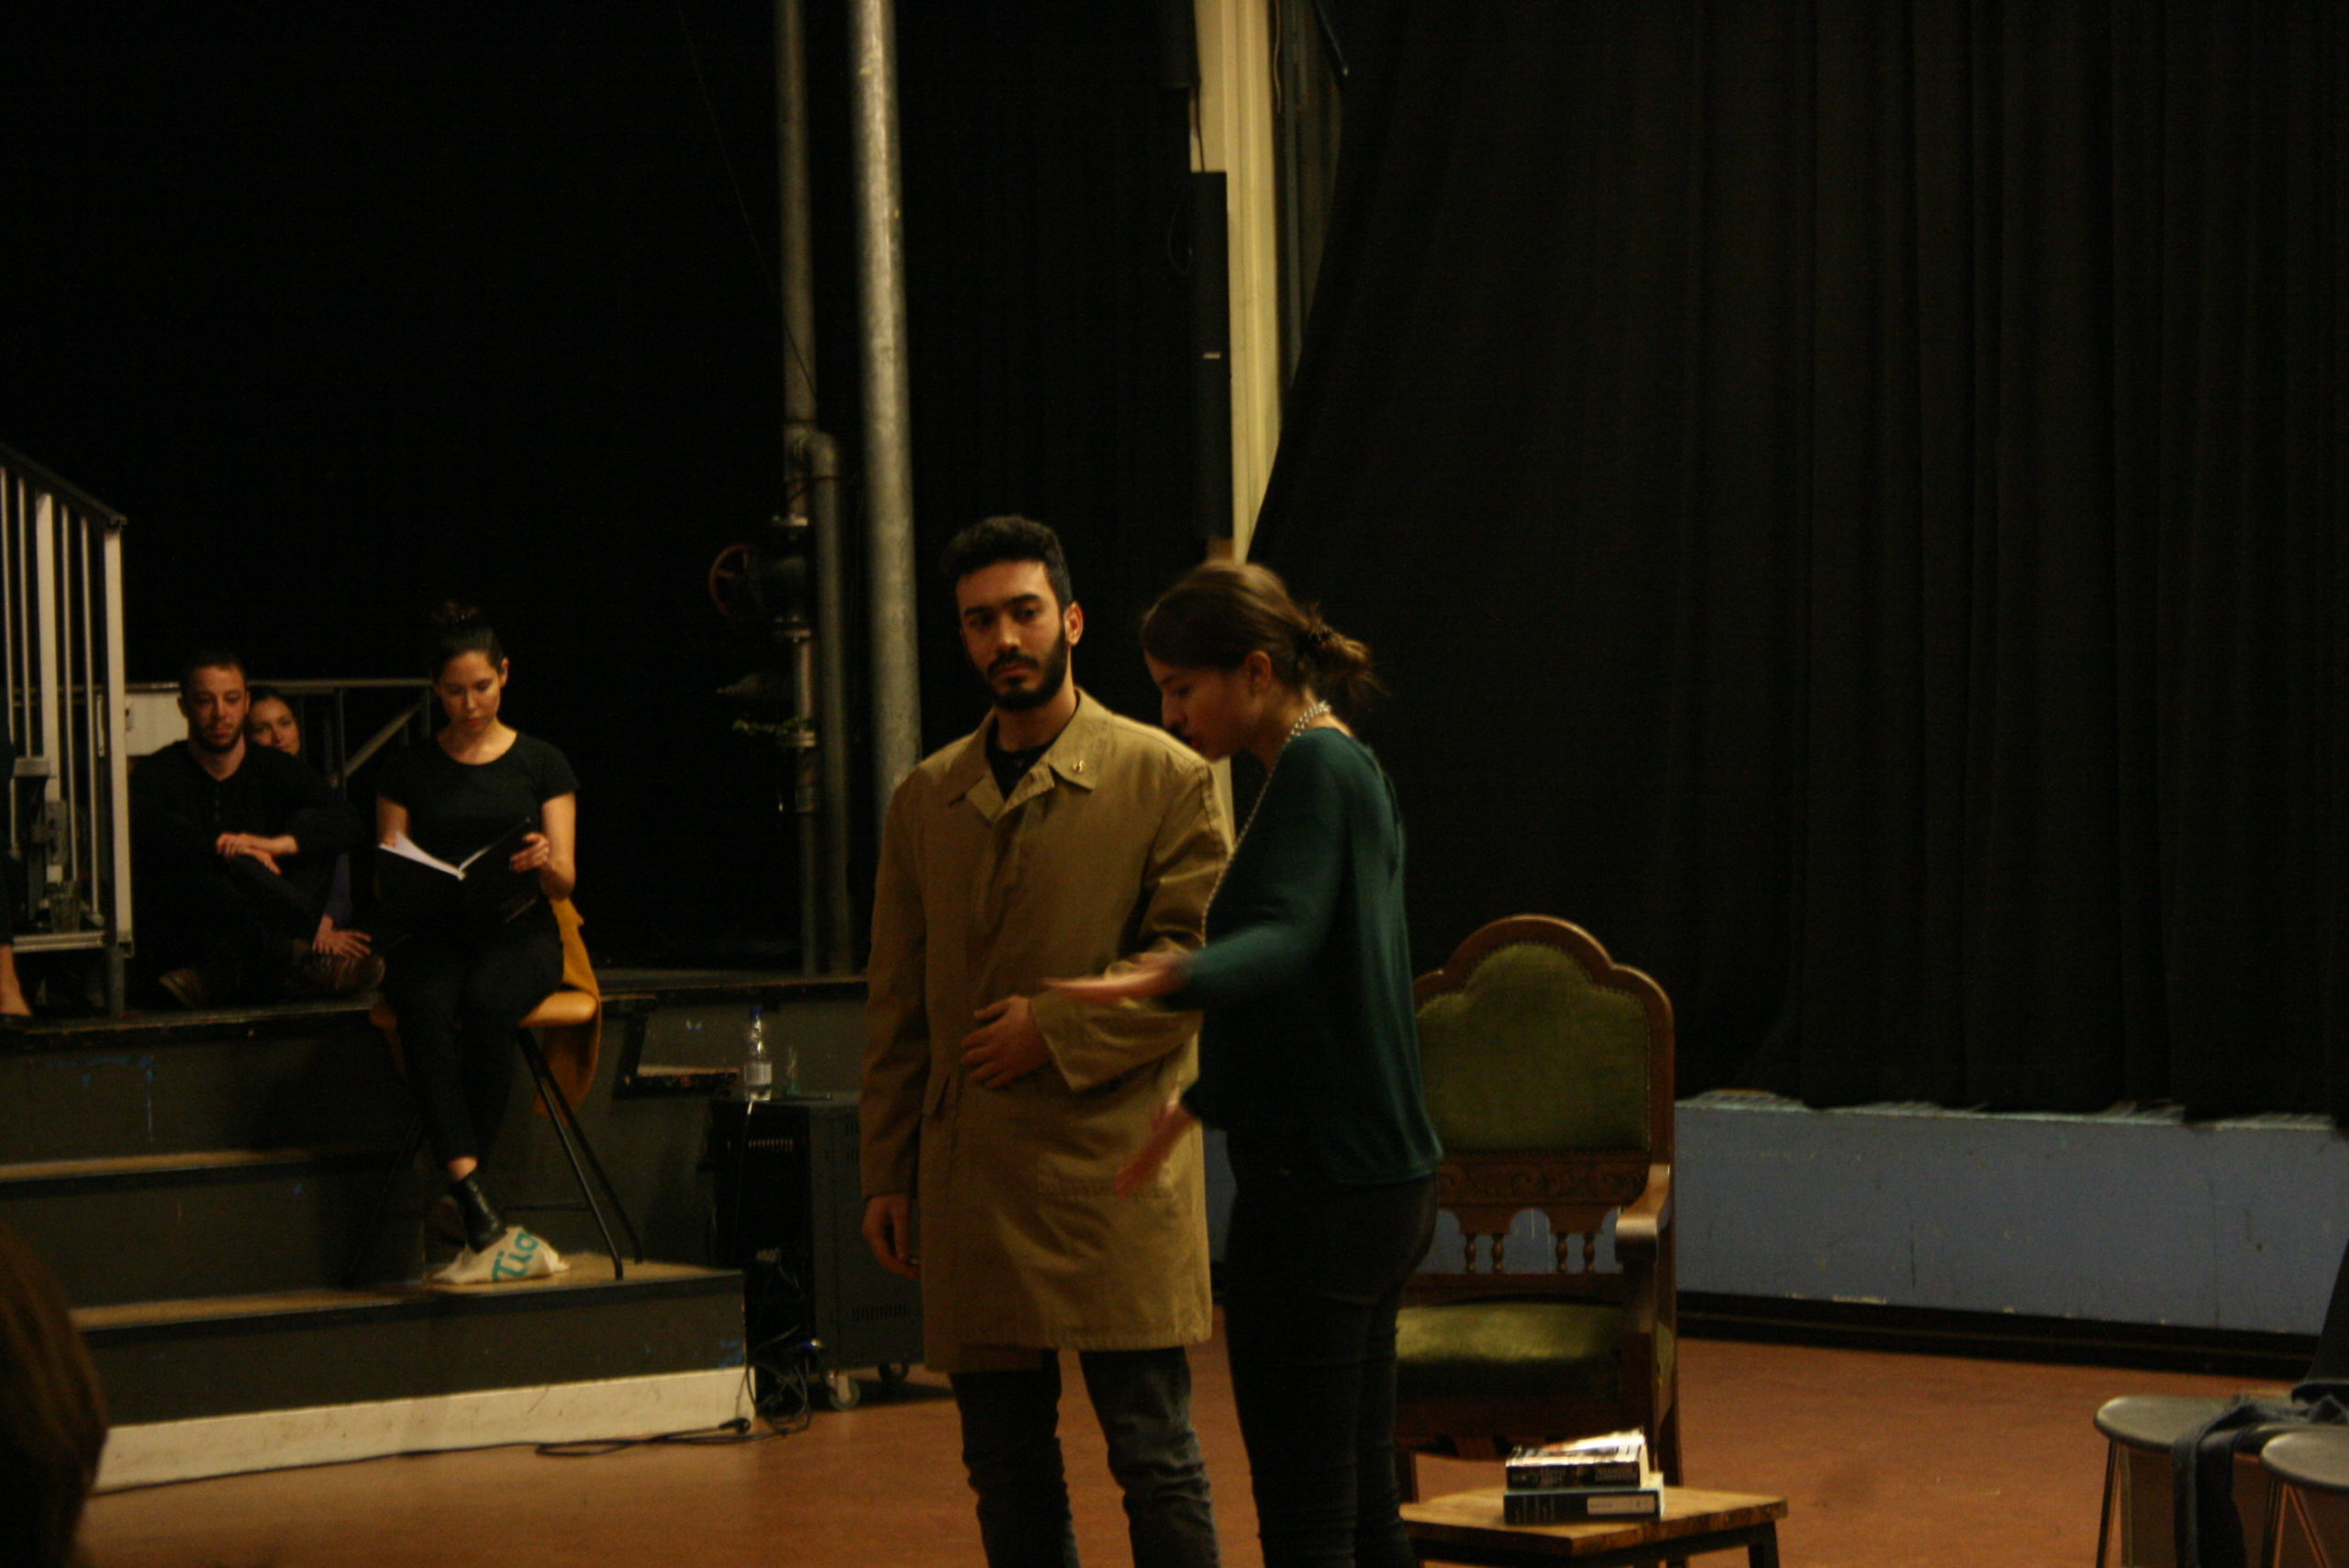 """Photo from the show """"Skin of our Teeth"""". Two actors are on stage, one dressed like a 1920s madame speaking to a man wearing a beige half-long coat"""